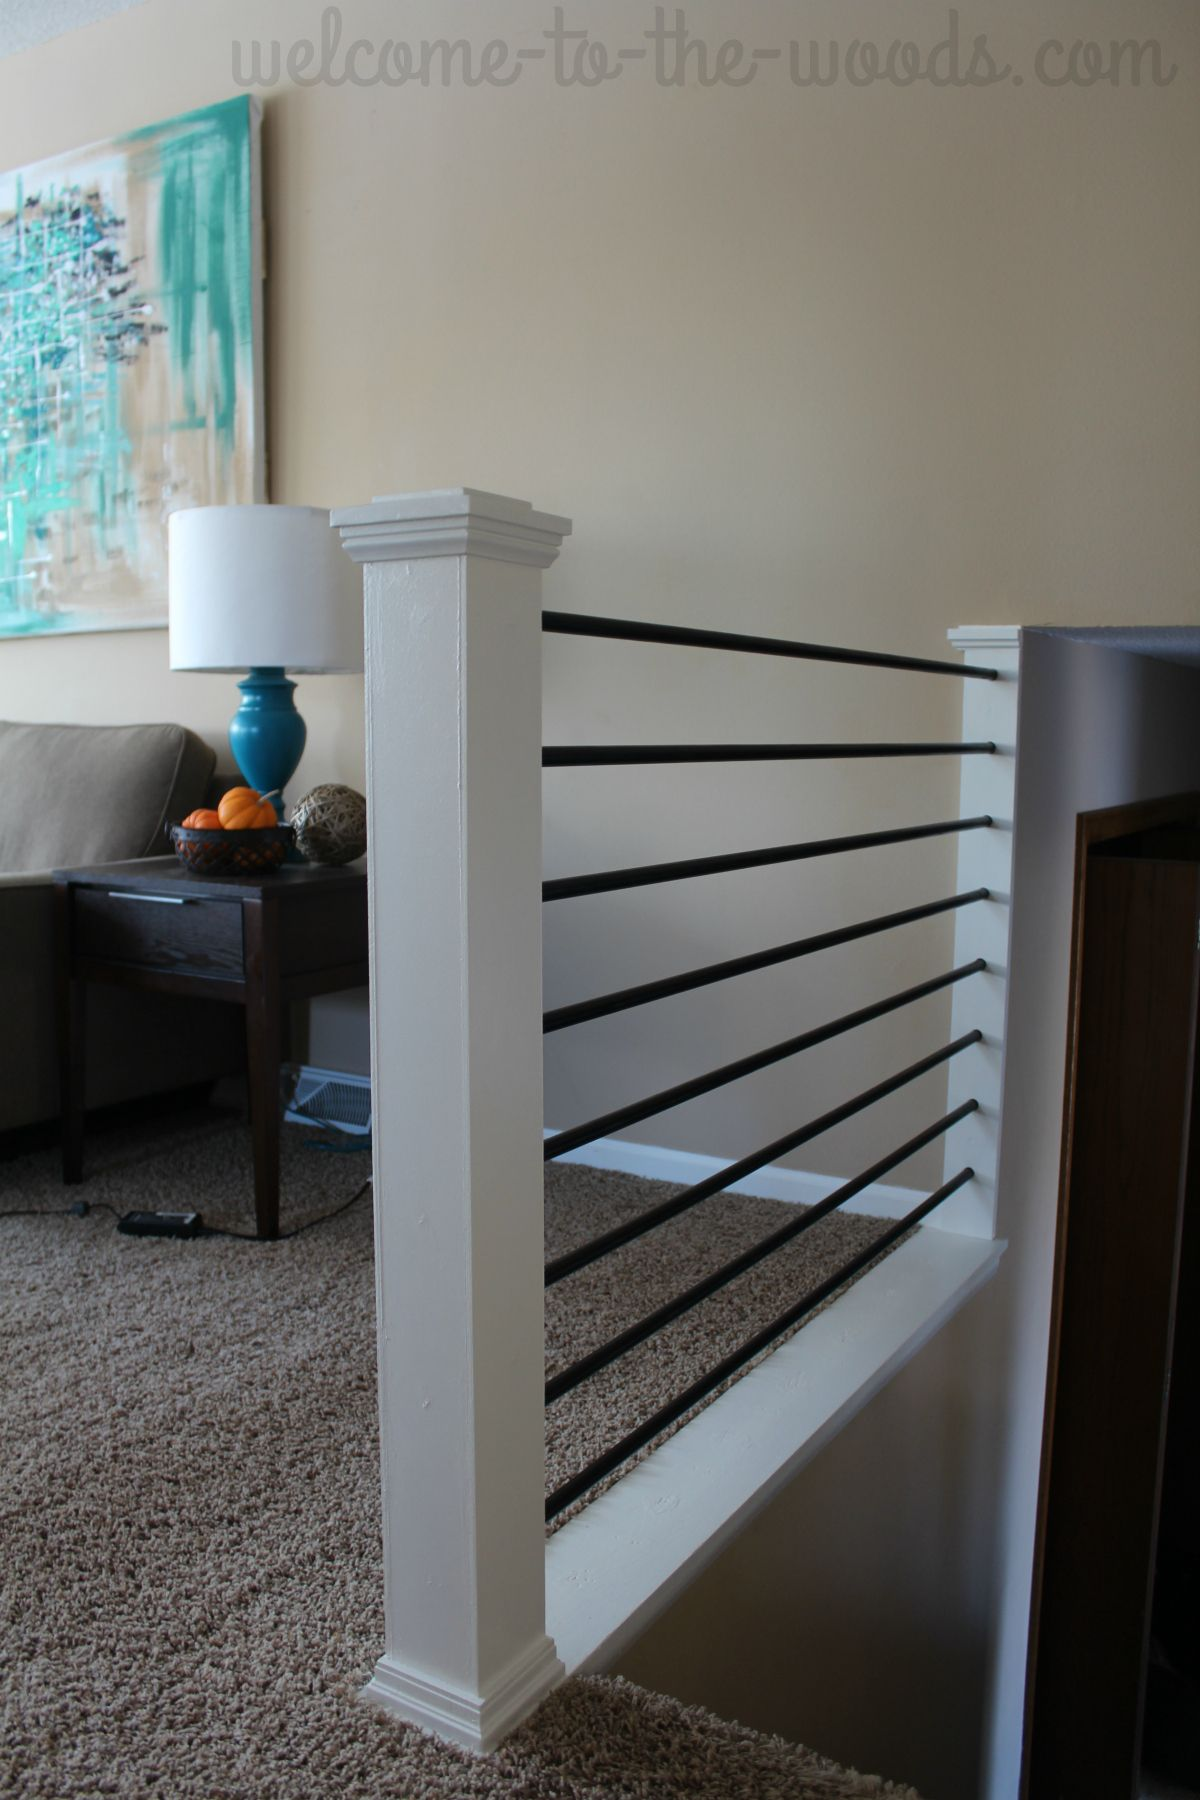 Stair Railing Diy Makeover Diy Stair Railing Stair Railing | Buy Handrails For Stairs | Stair Systems | Wrought Iron Balusters | Wood | Stair Treads | Lj Smith